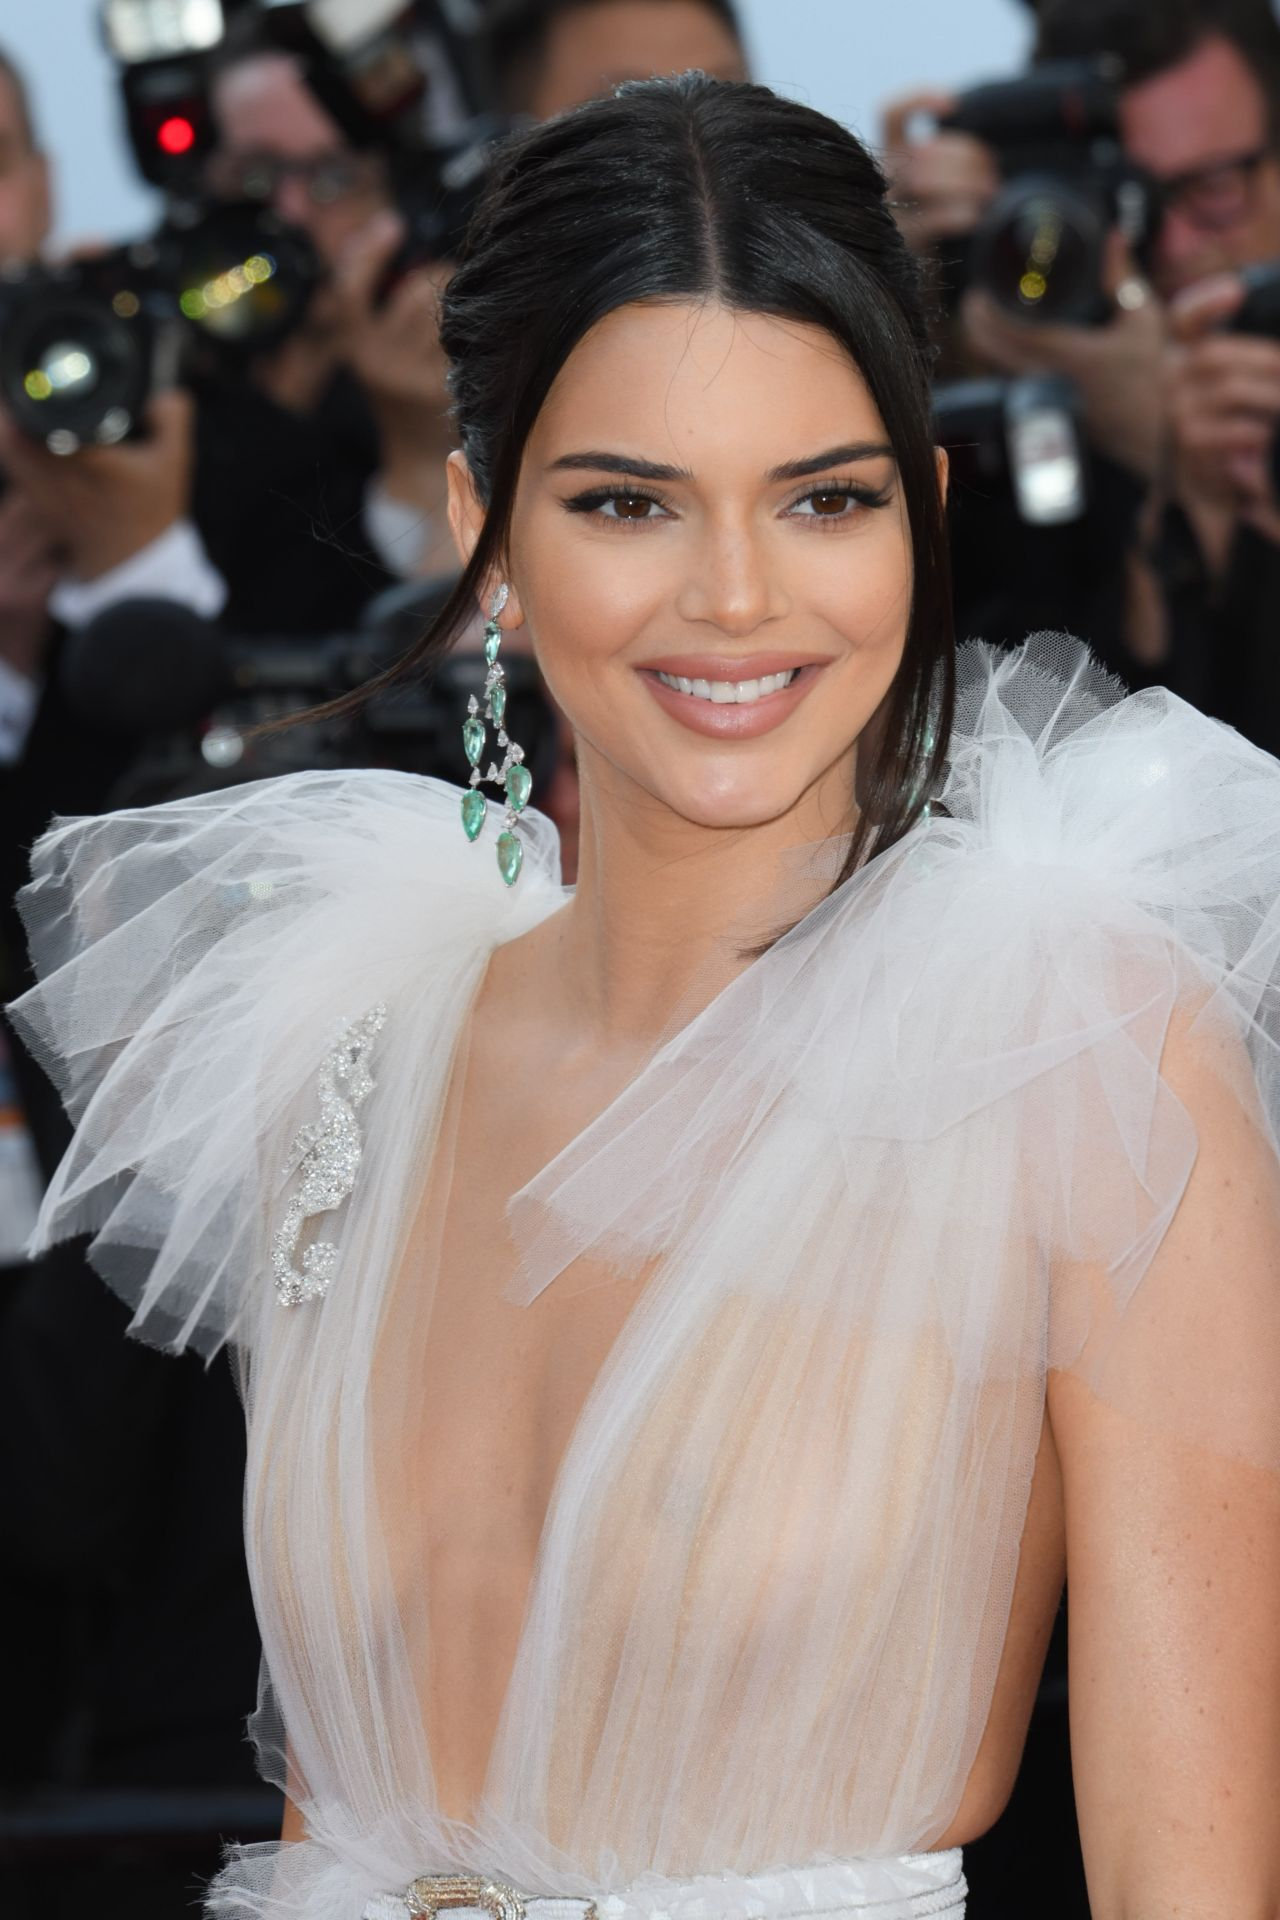 Kendall Jenner  Girls Of The Sun Premiere At Cannes -5164